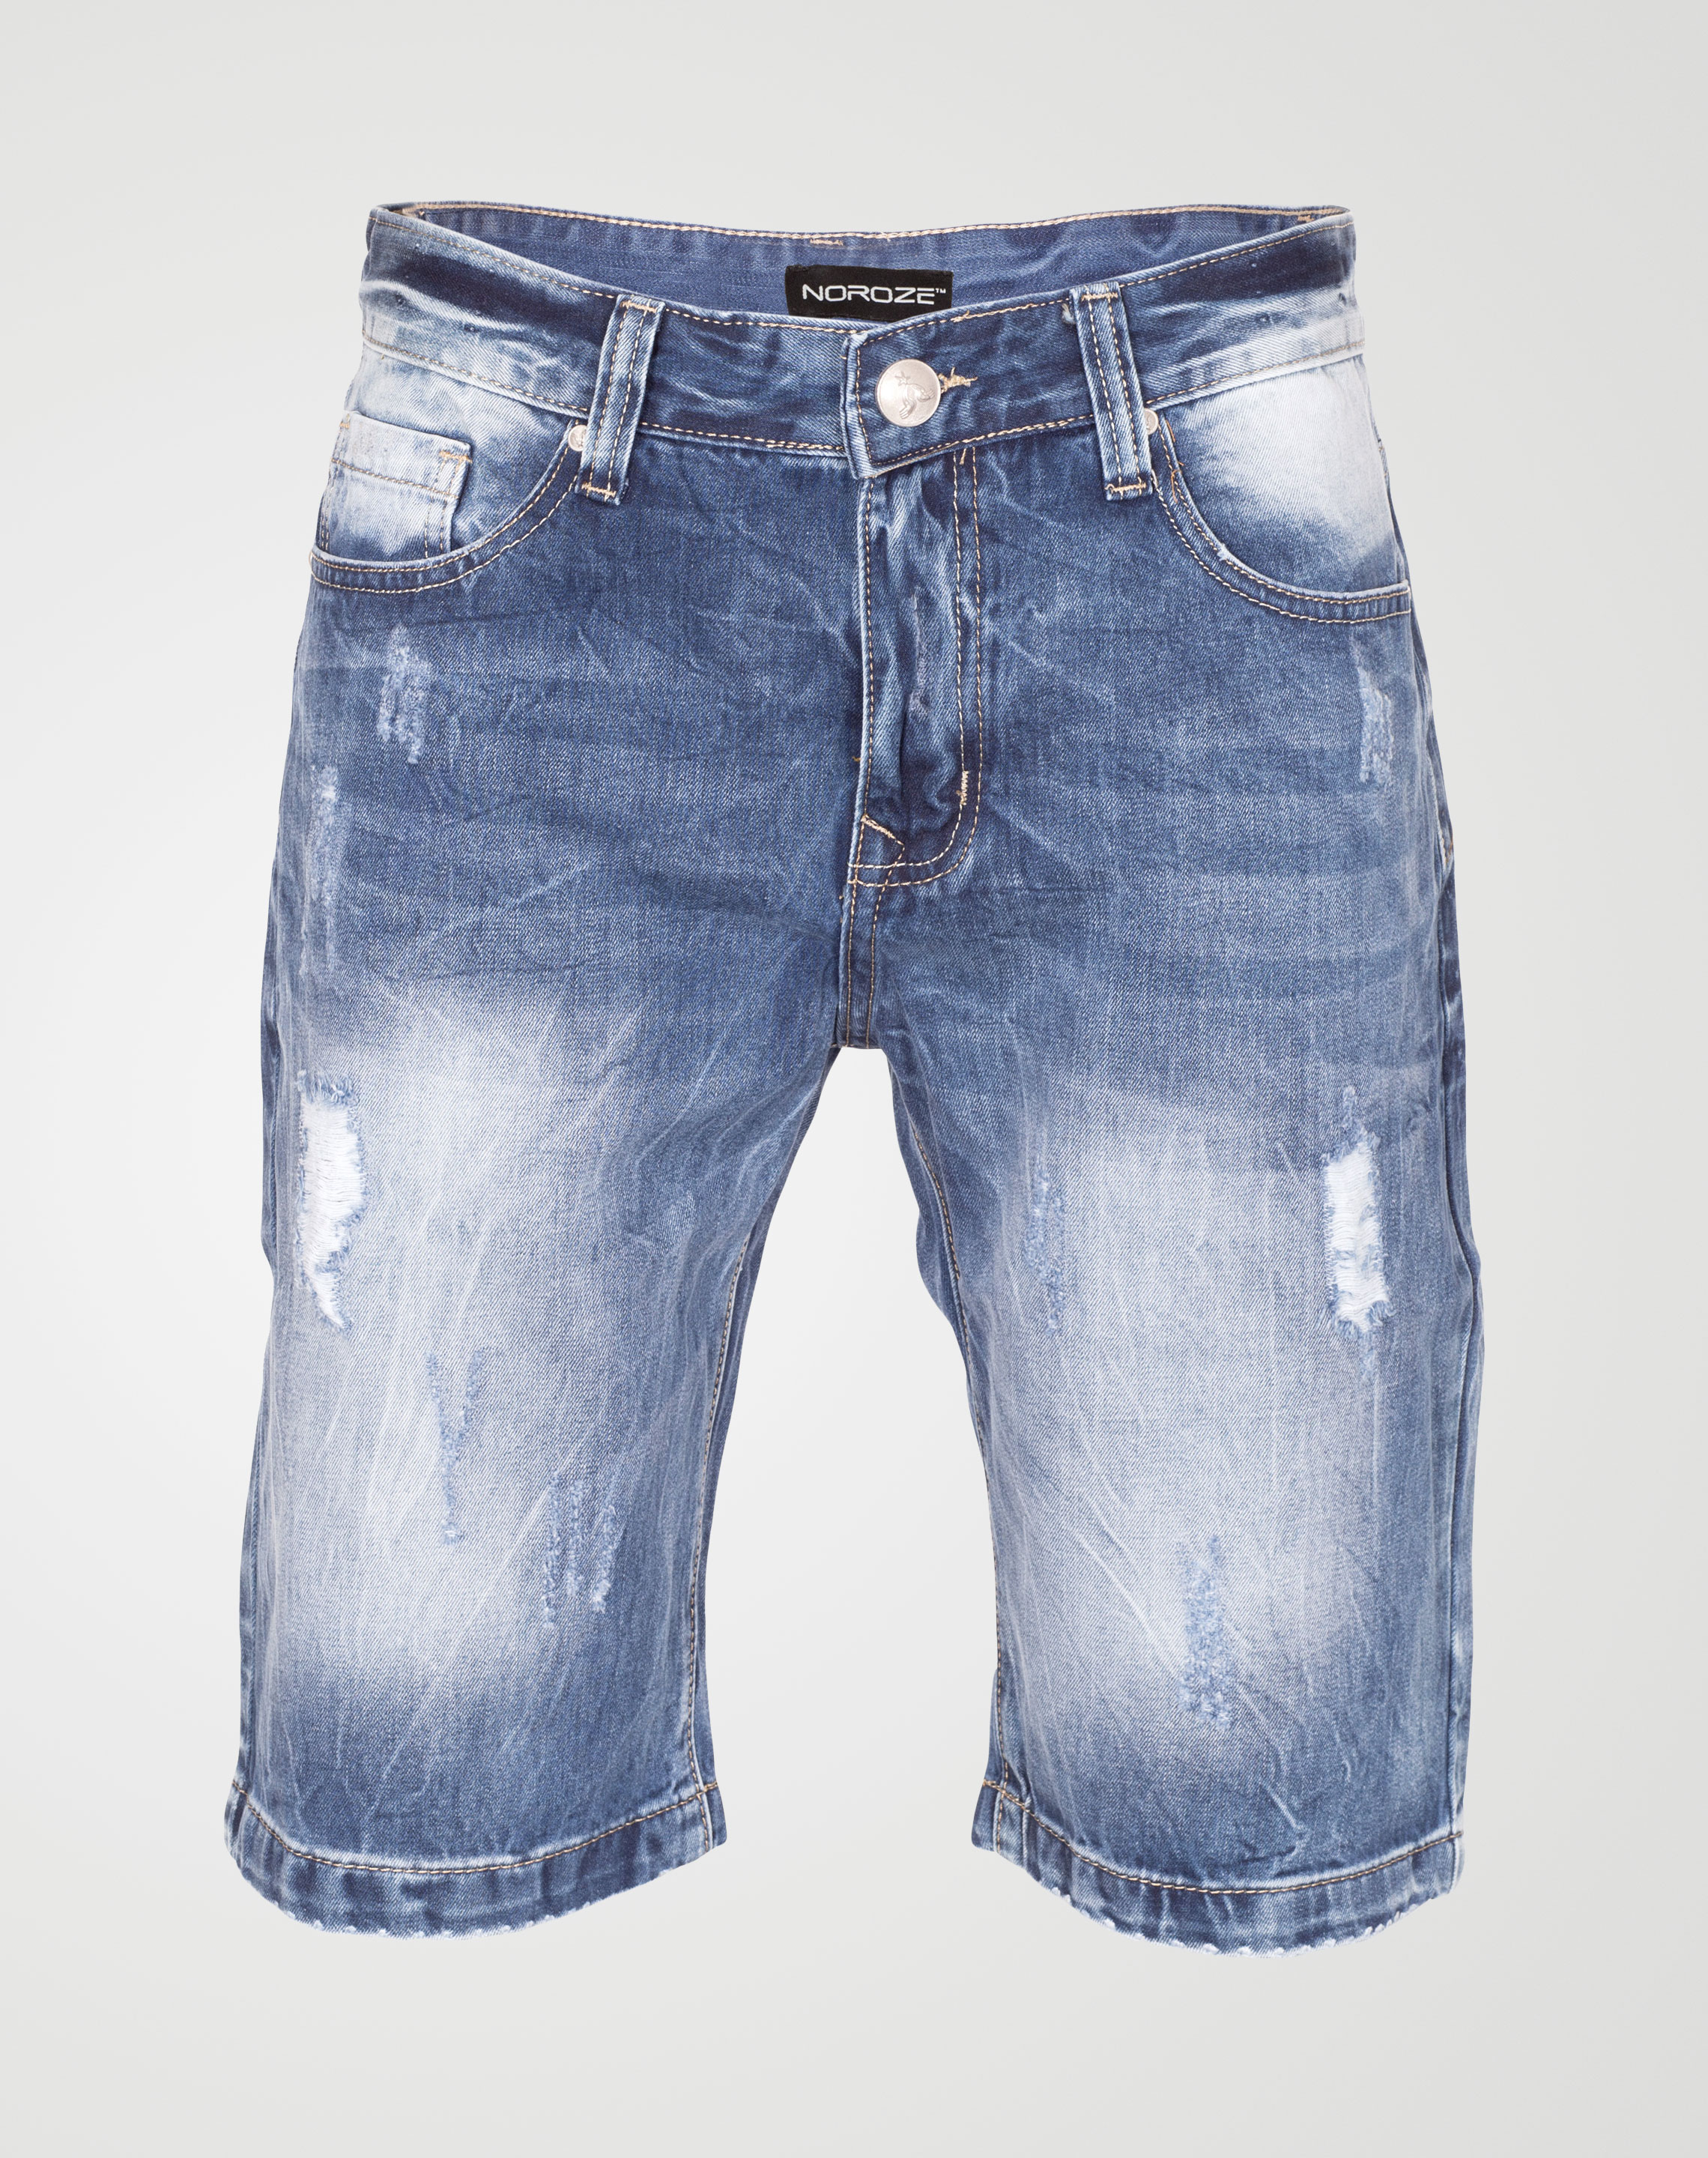 Image 1 of Mens Ripped Denim Shorts WN2438 color Blue and sizes 29, 30, 31, 32, 33, 34, 36, 38 from Noroze